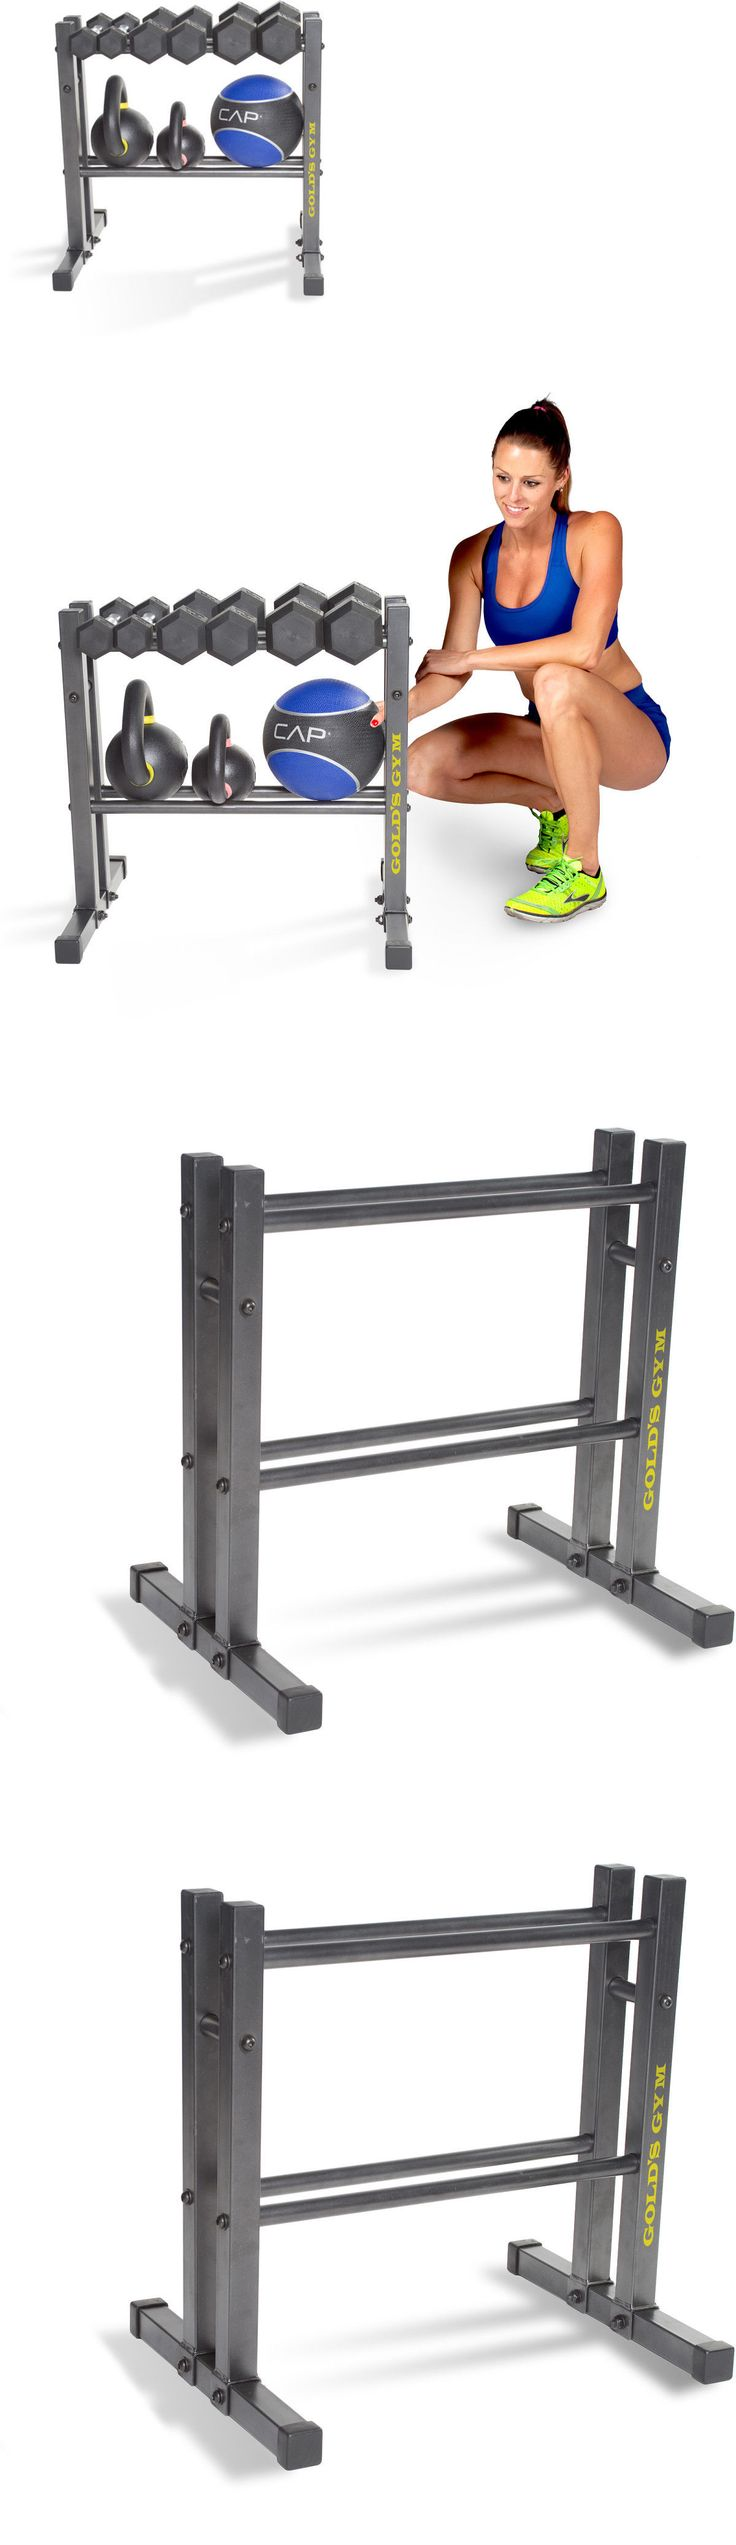 Weight Storage 179819: Gold S Gym 24 Utility Rack Storage Organizer Steel Black Dumbbells Barbells New -> BUY IT NOW ONLY: $46.99 on eBay!